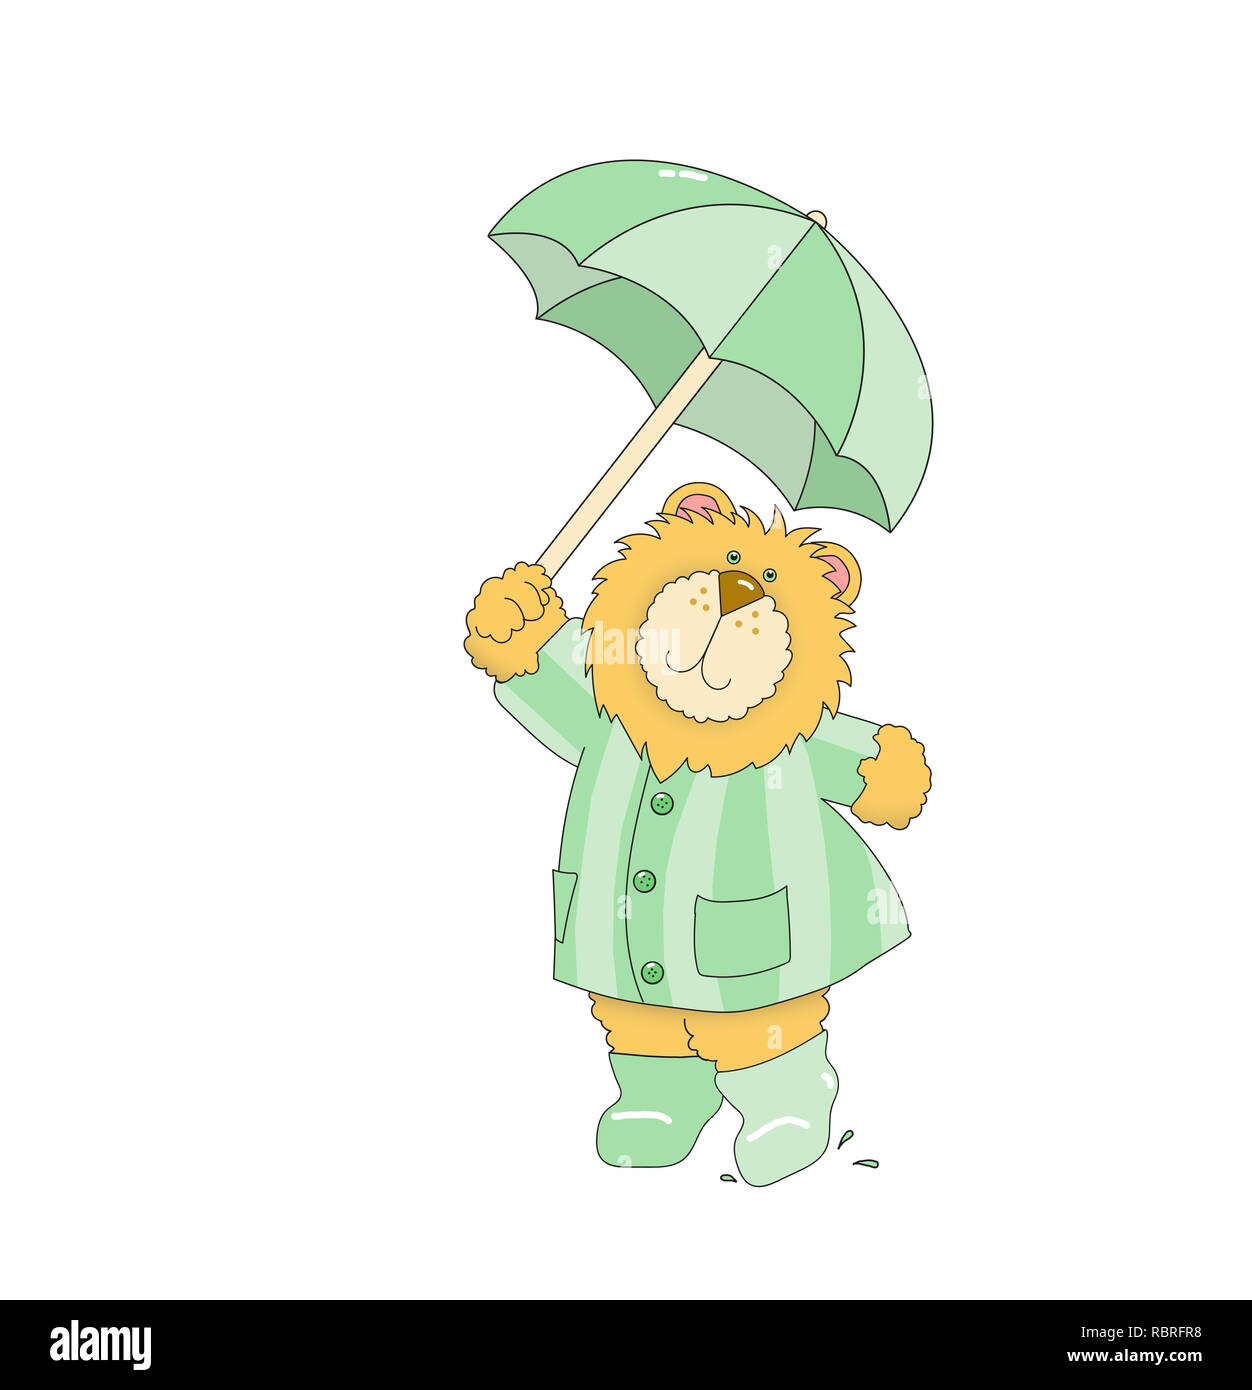 Illustration of a lion wearing a green striped raincoat and boots, holding an umbrella against a white background - Stock Image